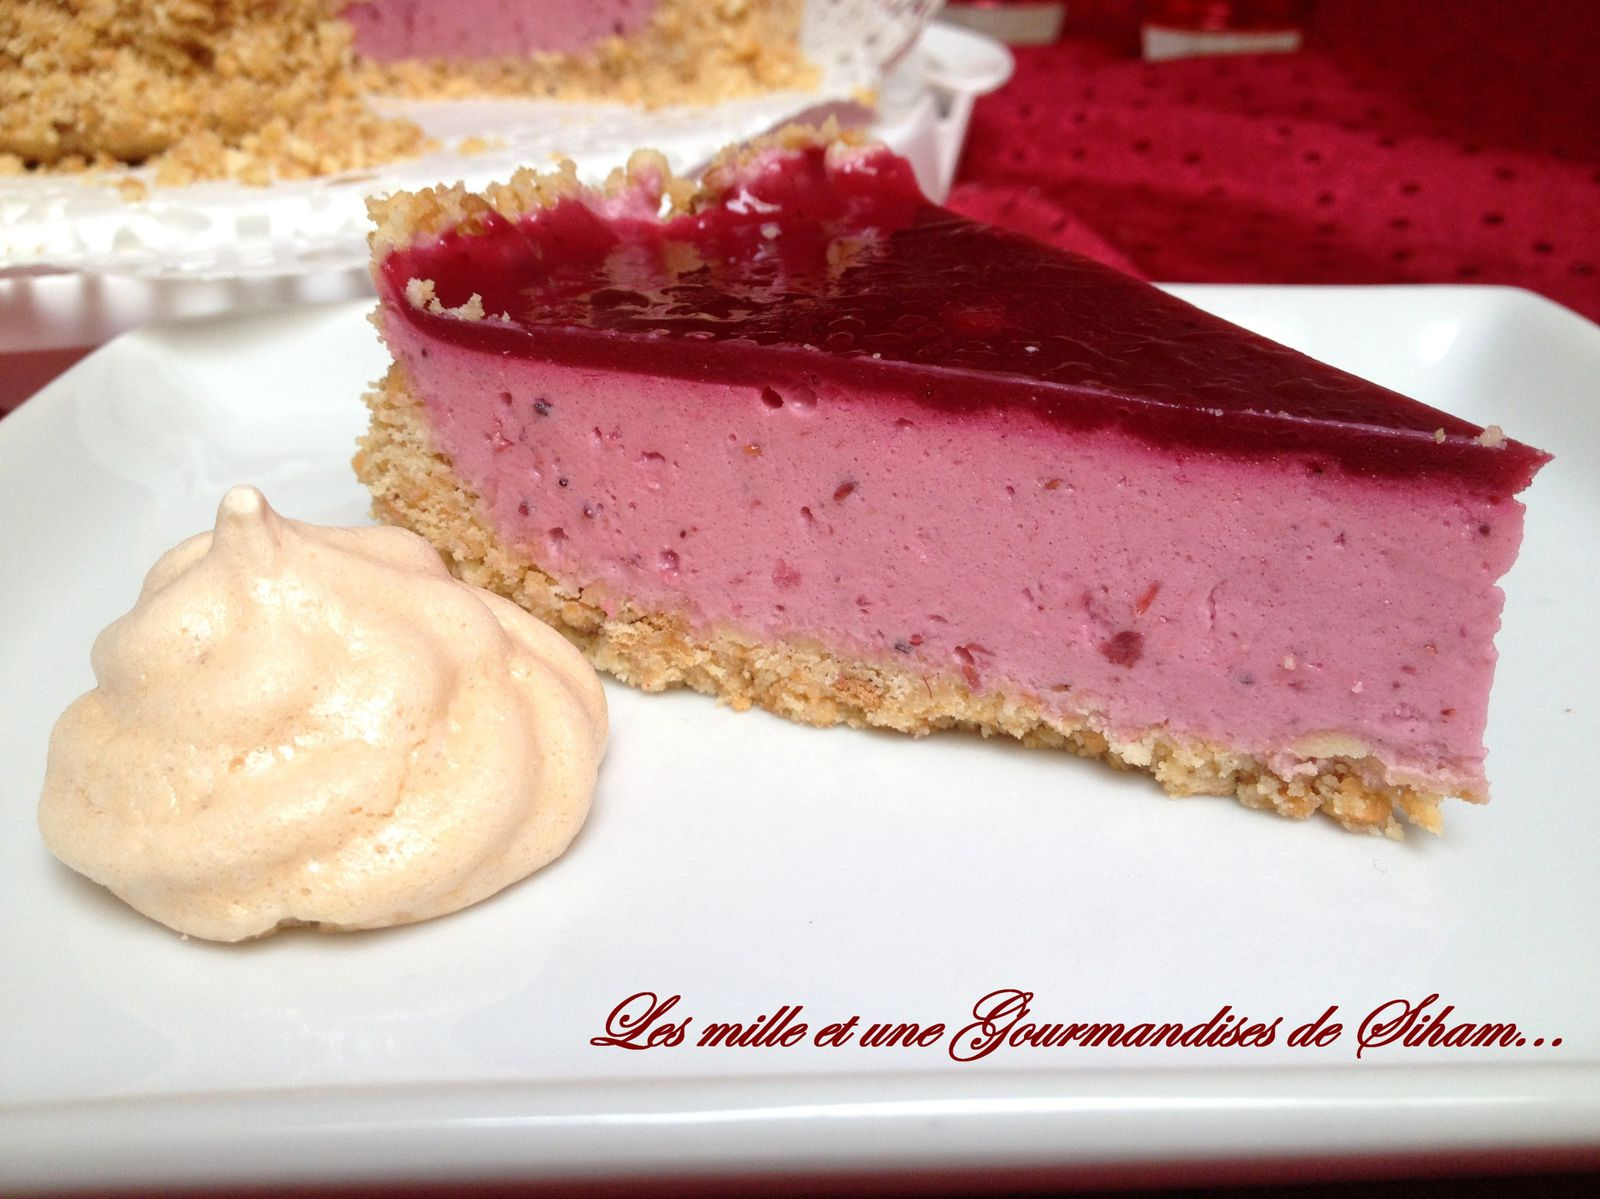 Cheesecake aux fruits rouges...